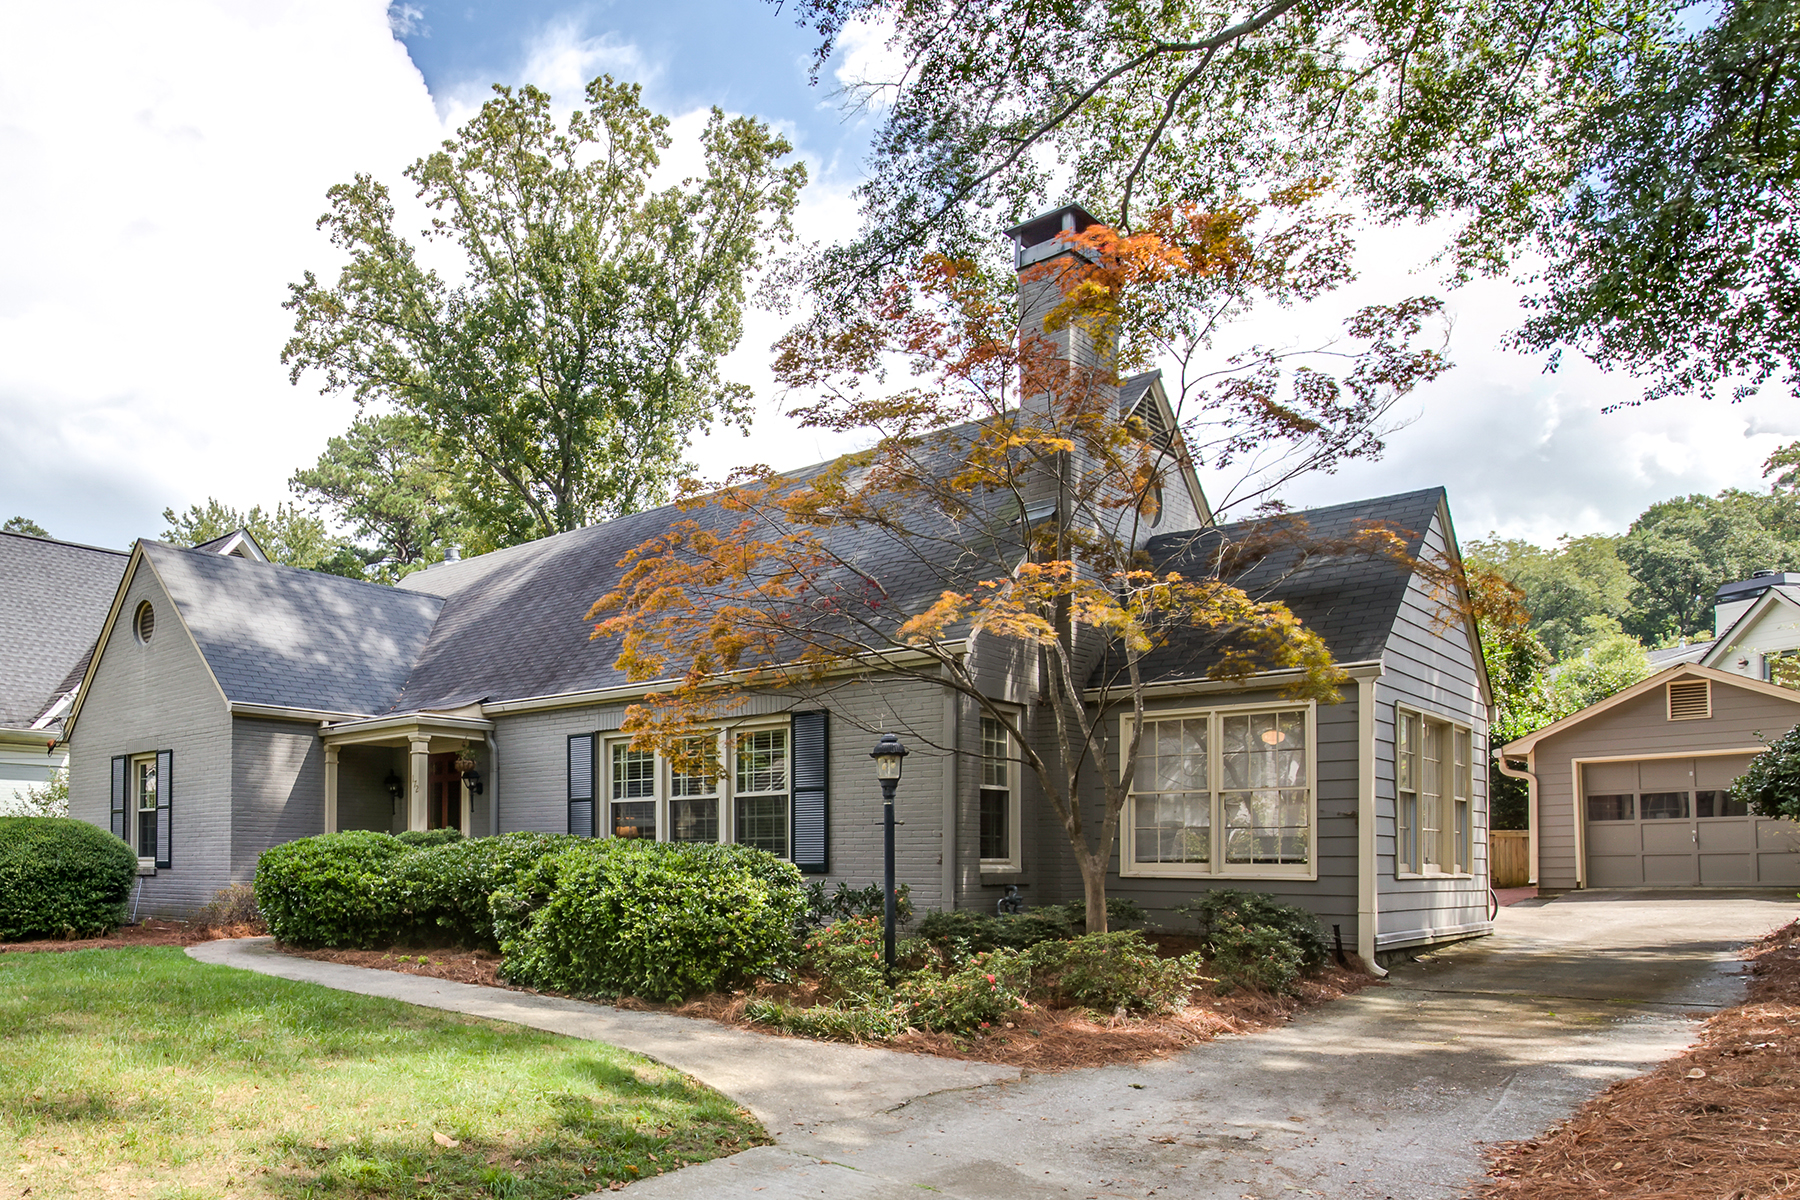 Single Family Home for Sale at Coveted Decatur Location with Private, Landscaped Backyard 172 Vidal Boulevard Decatur, Georgia 30030 United States